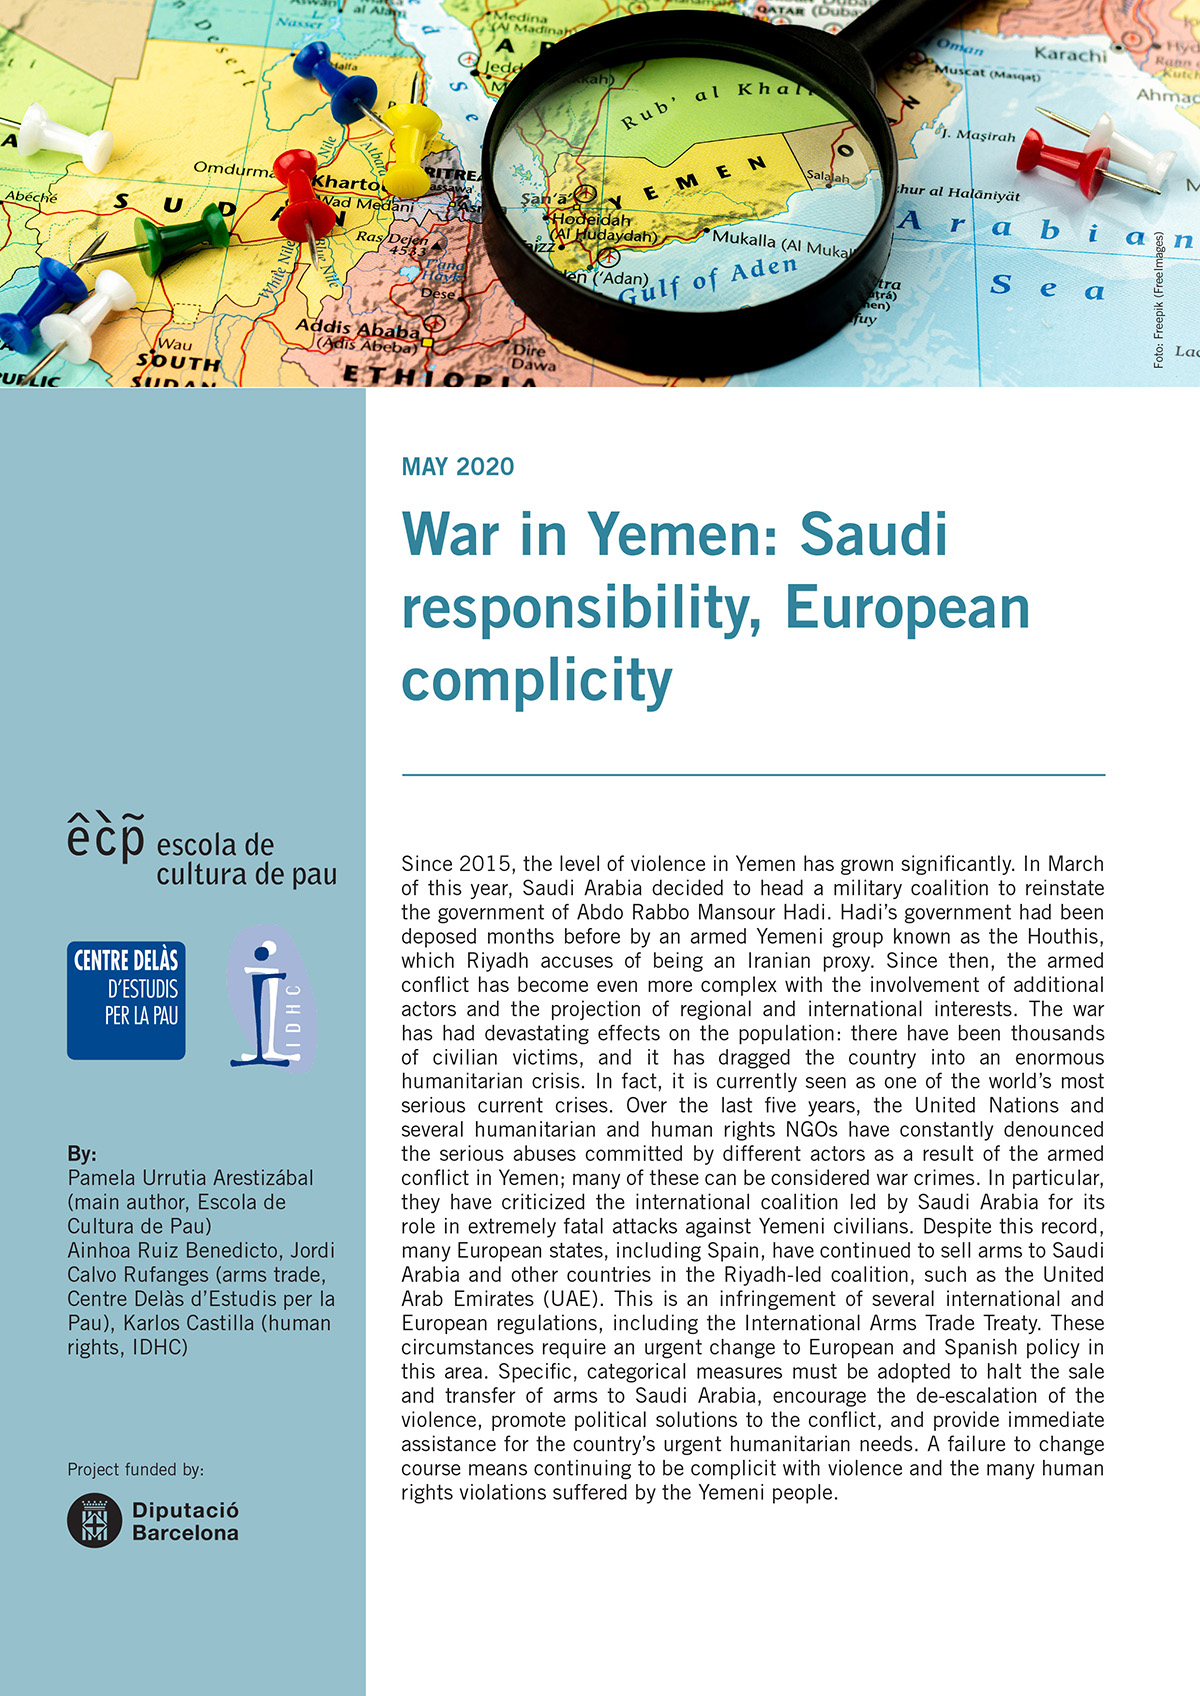 """Policy Paper from ECP, IDHC and Centre Delàs: """"War in Yemen: Saudi responsibility, European complicity"""""""